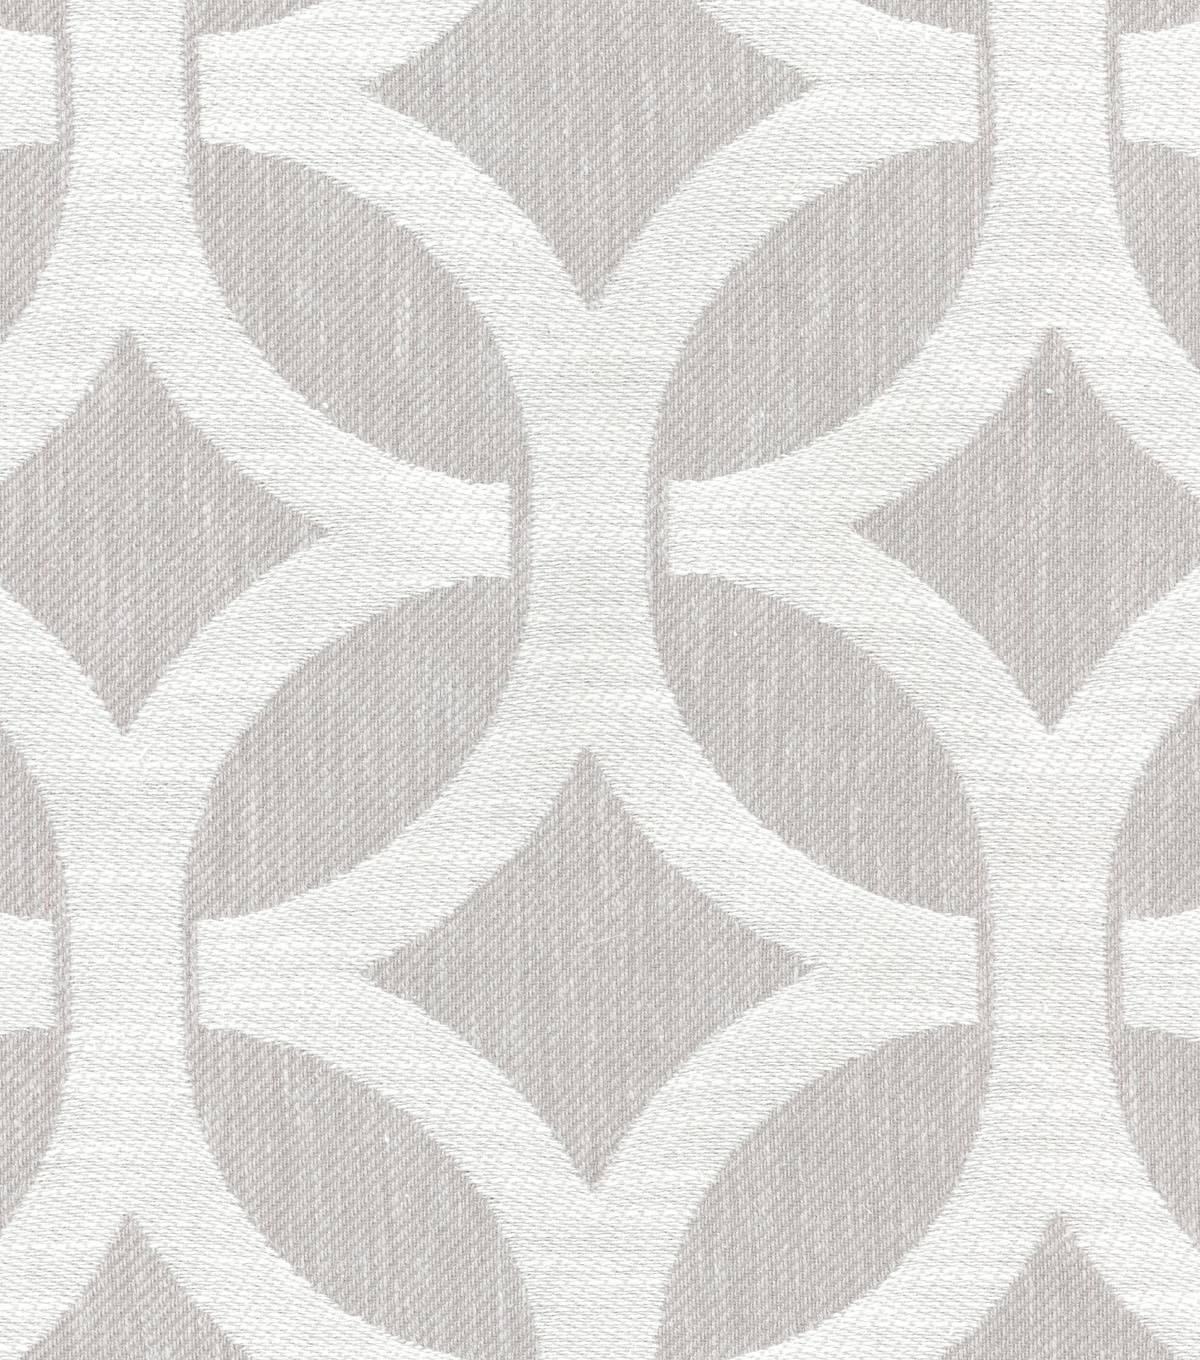 Home Decor 8\u0022x8\u0022 Swatch Fabric-Waverly Ludlow Lattice Fog